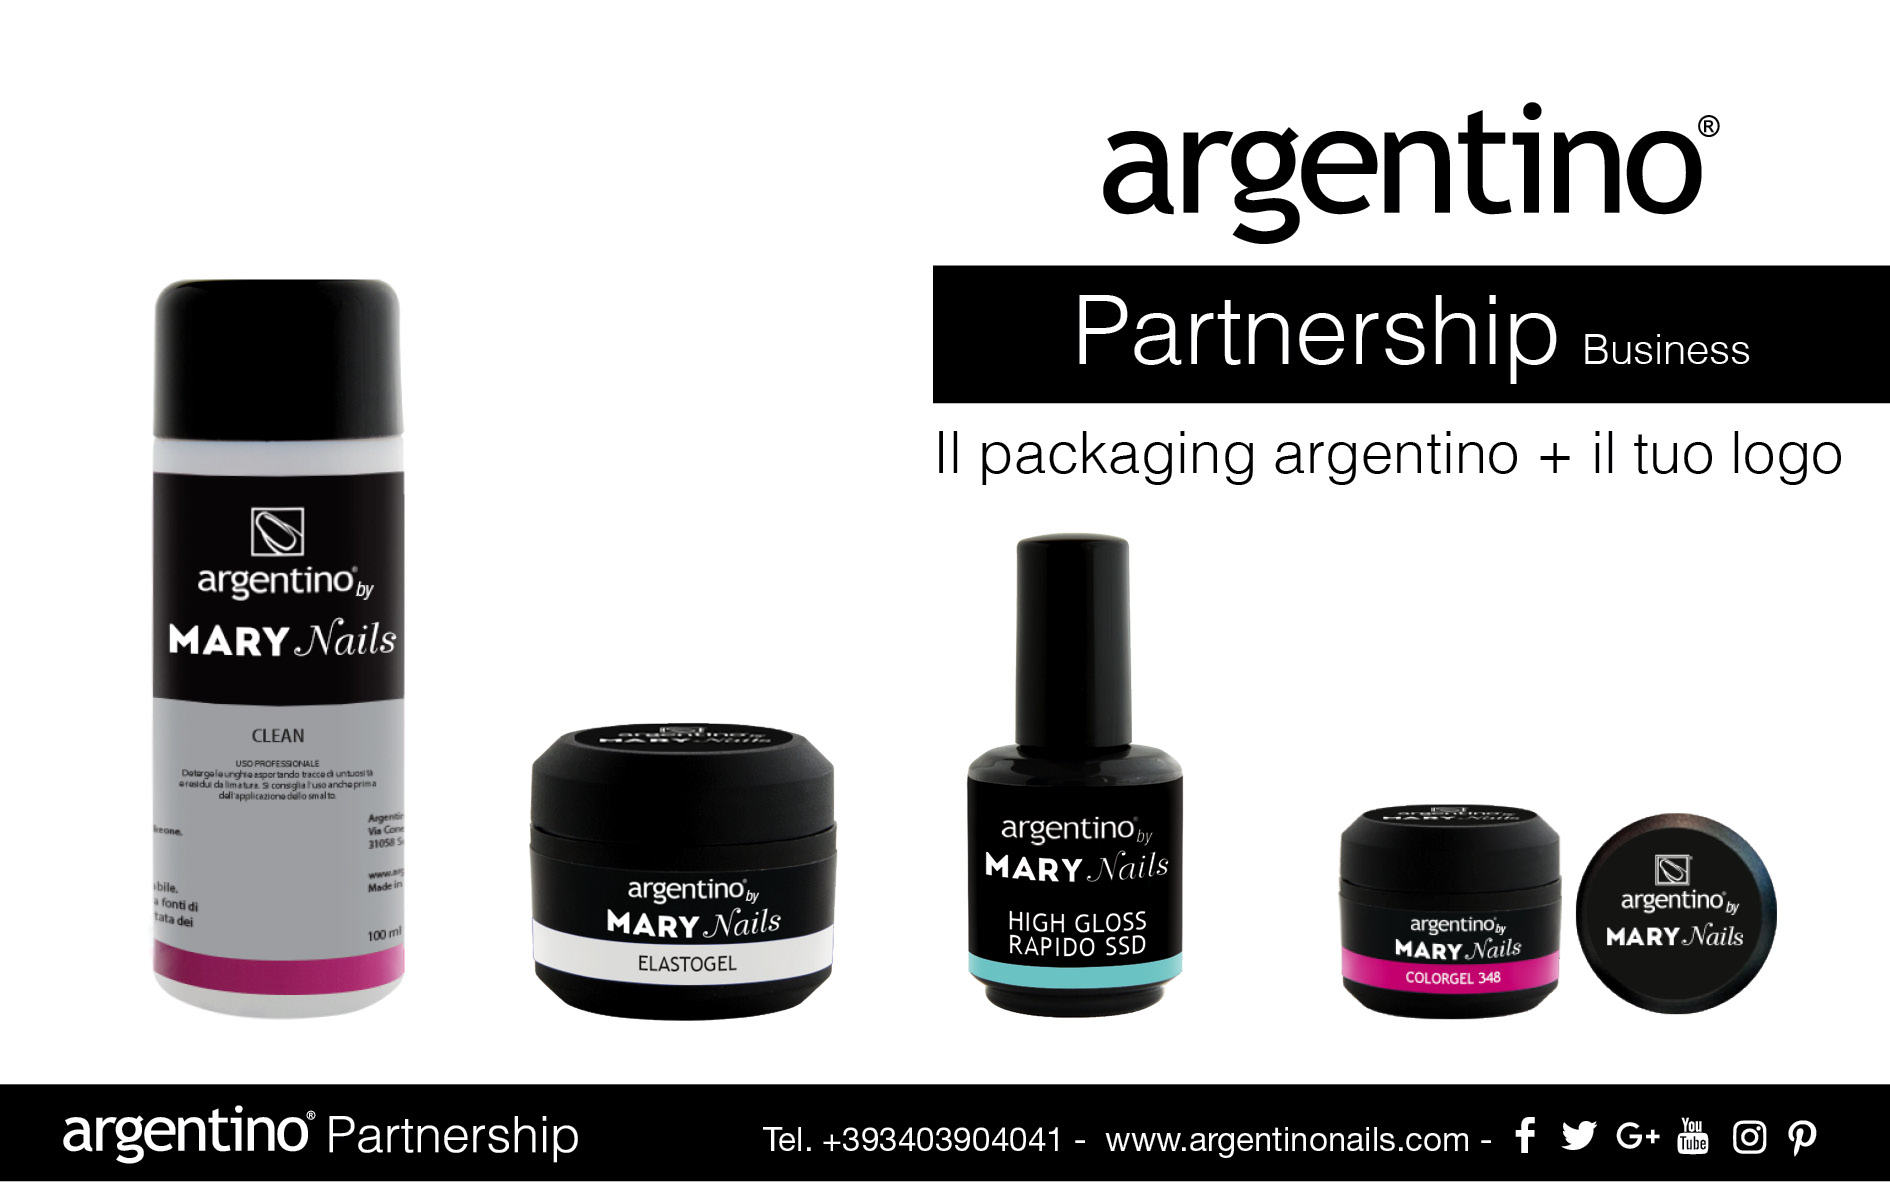 CREATE YOUR PRIVATE LABEL - Argentino Nails